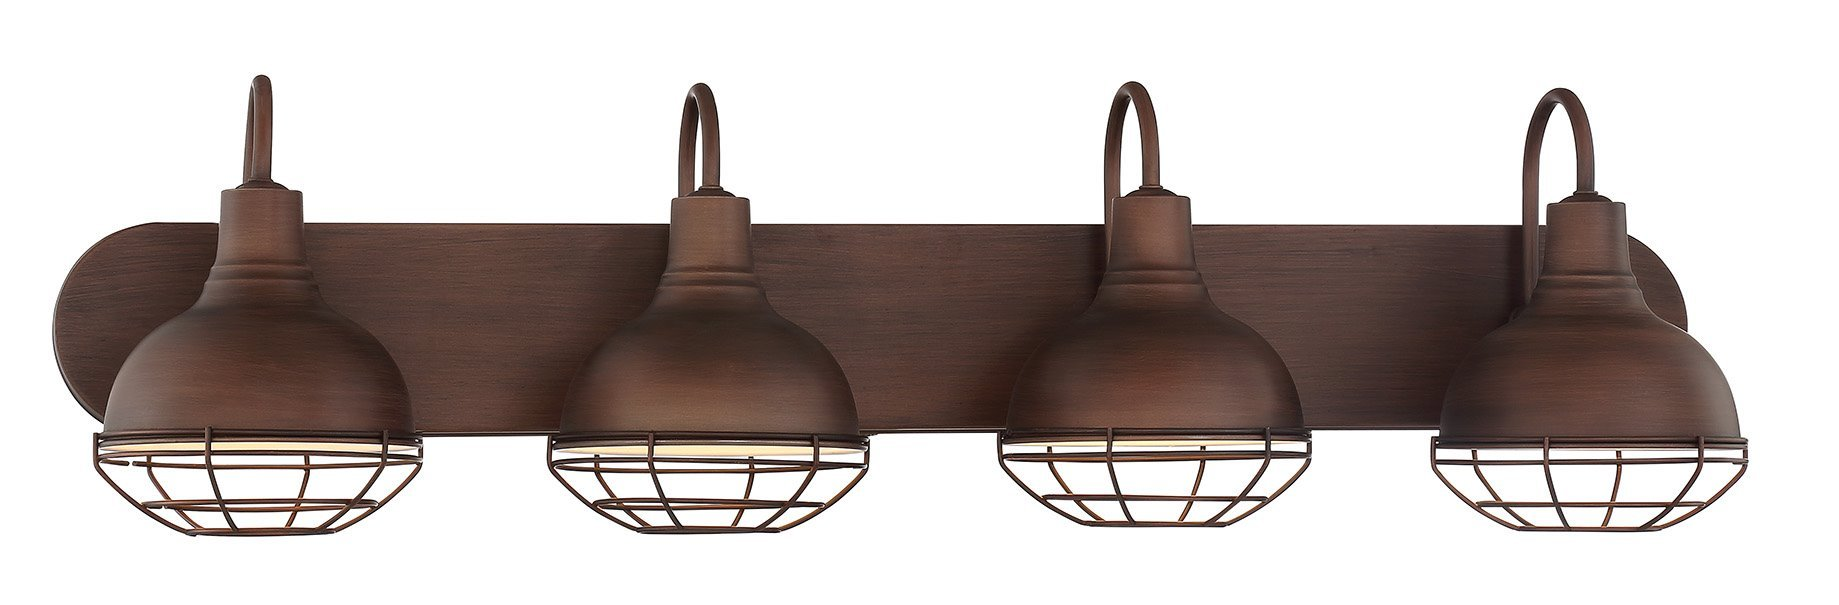 Revel Liberty 36'' 4-Light Industrial Vanity/Bathroom Light, Brushed Bronze Finish by Revel